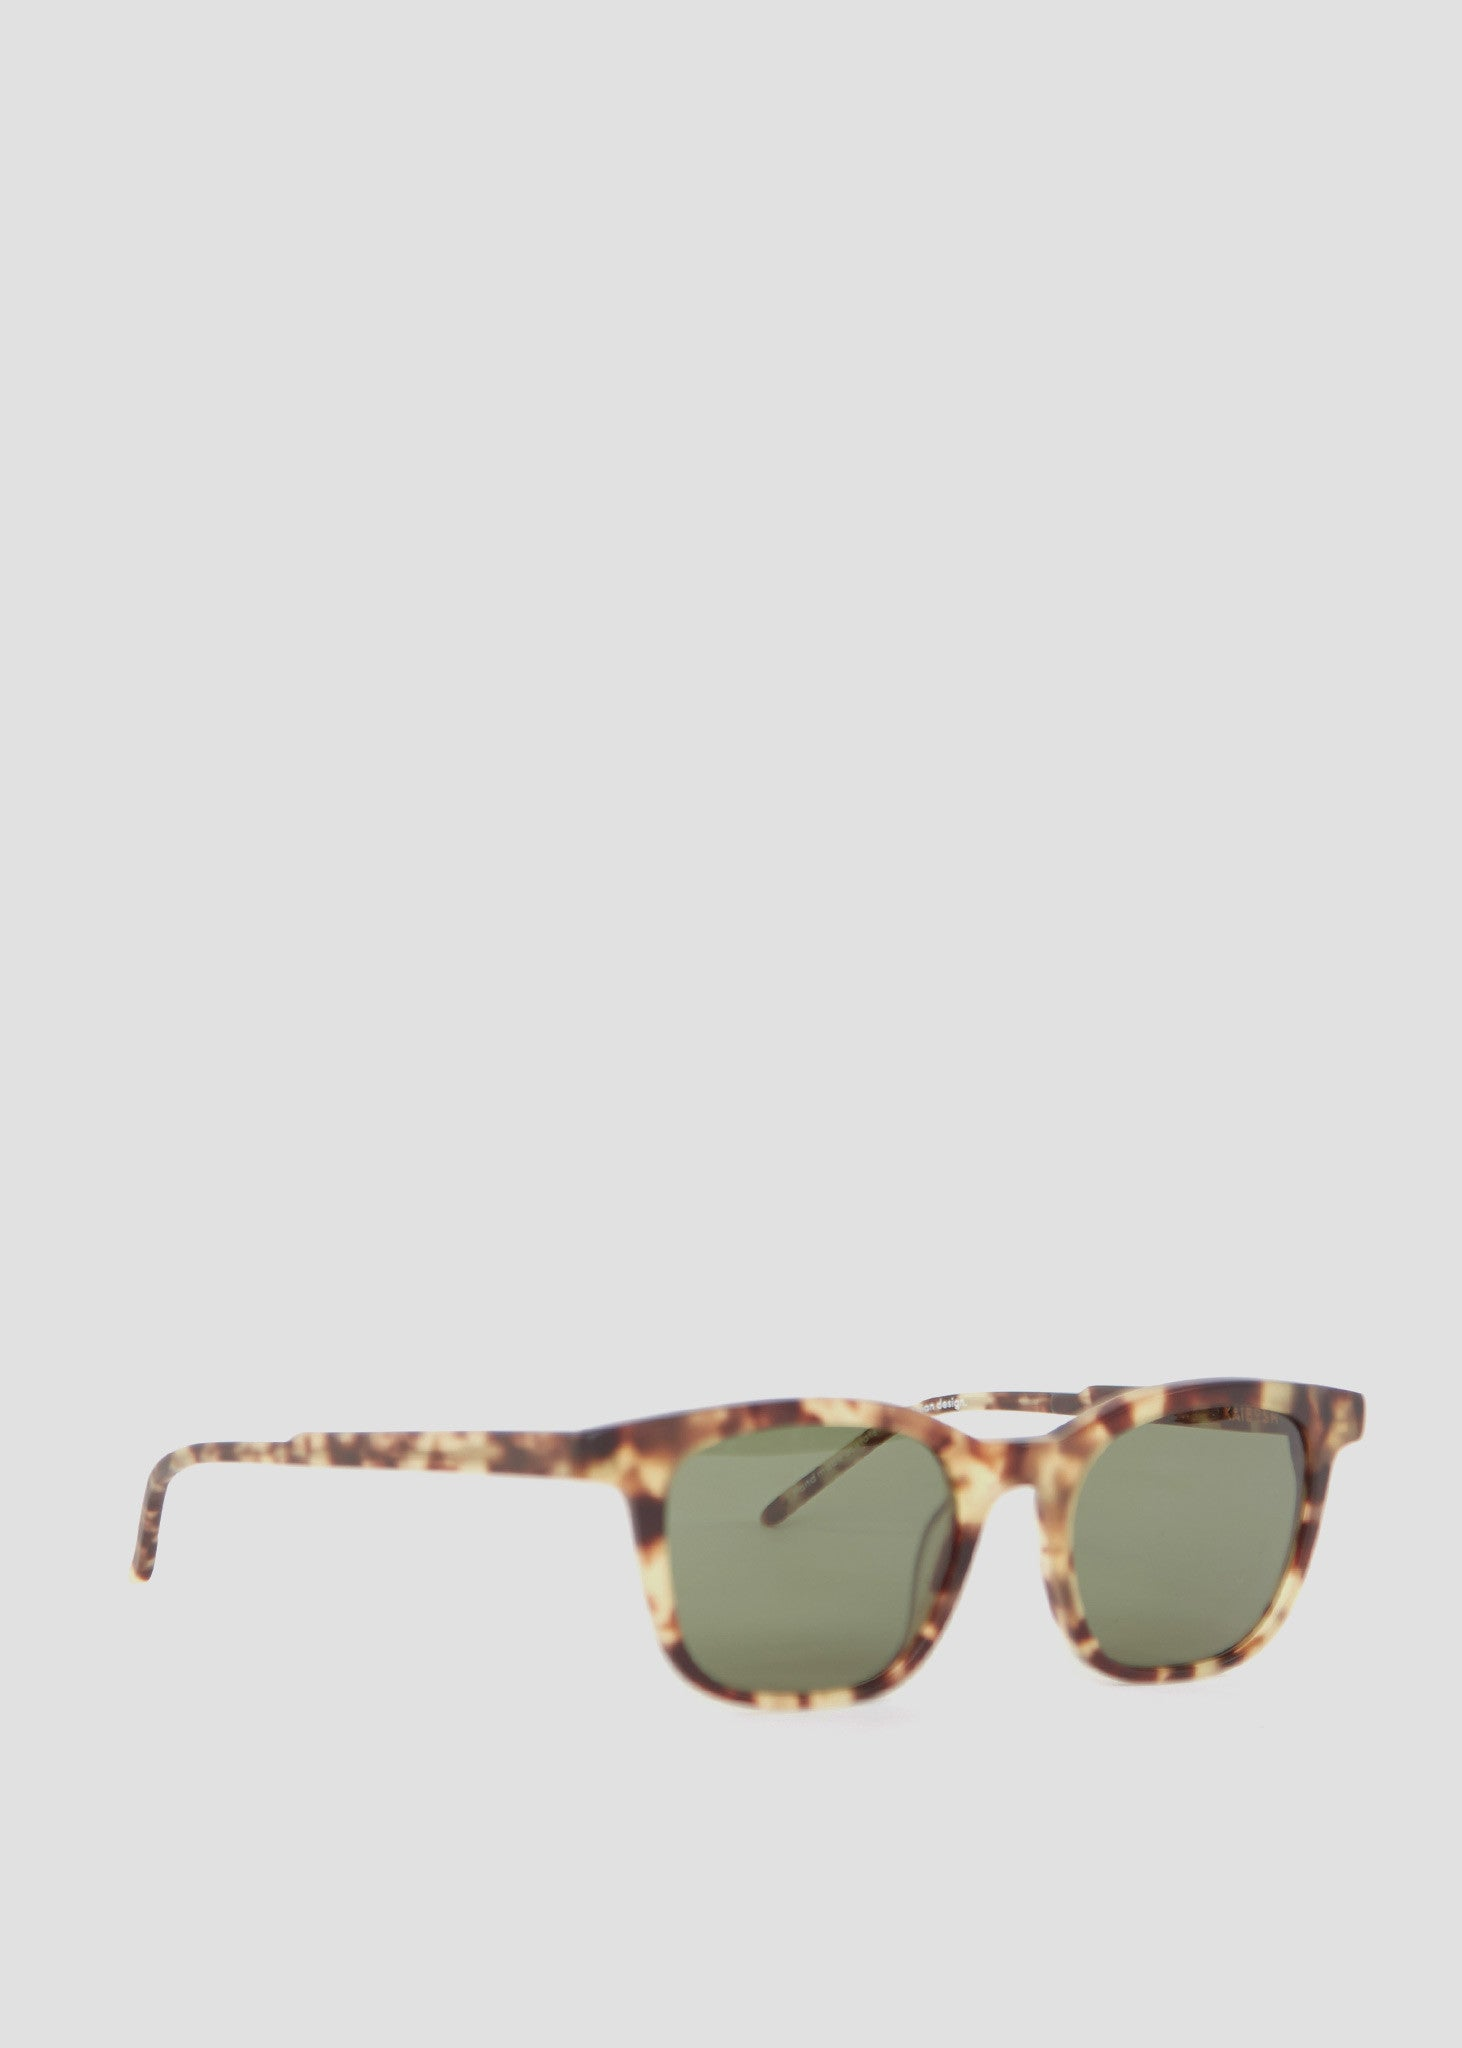 A Scandinavian in NY Sunglasses Modern Tortoise Kaibosh Womens Eyewear- someplace